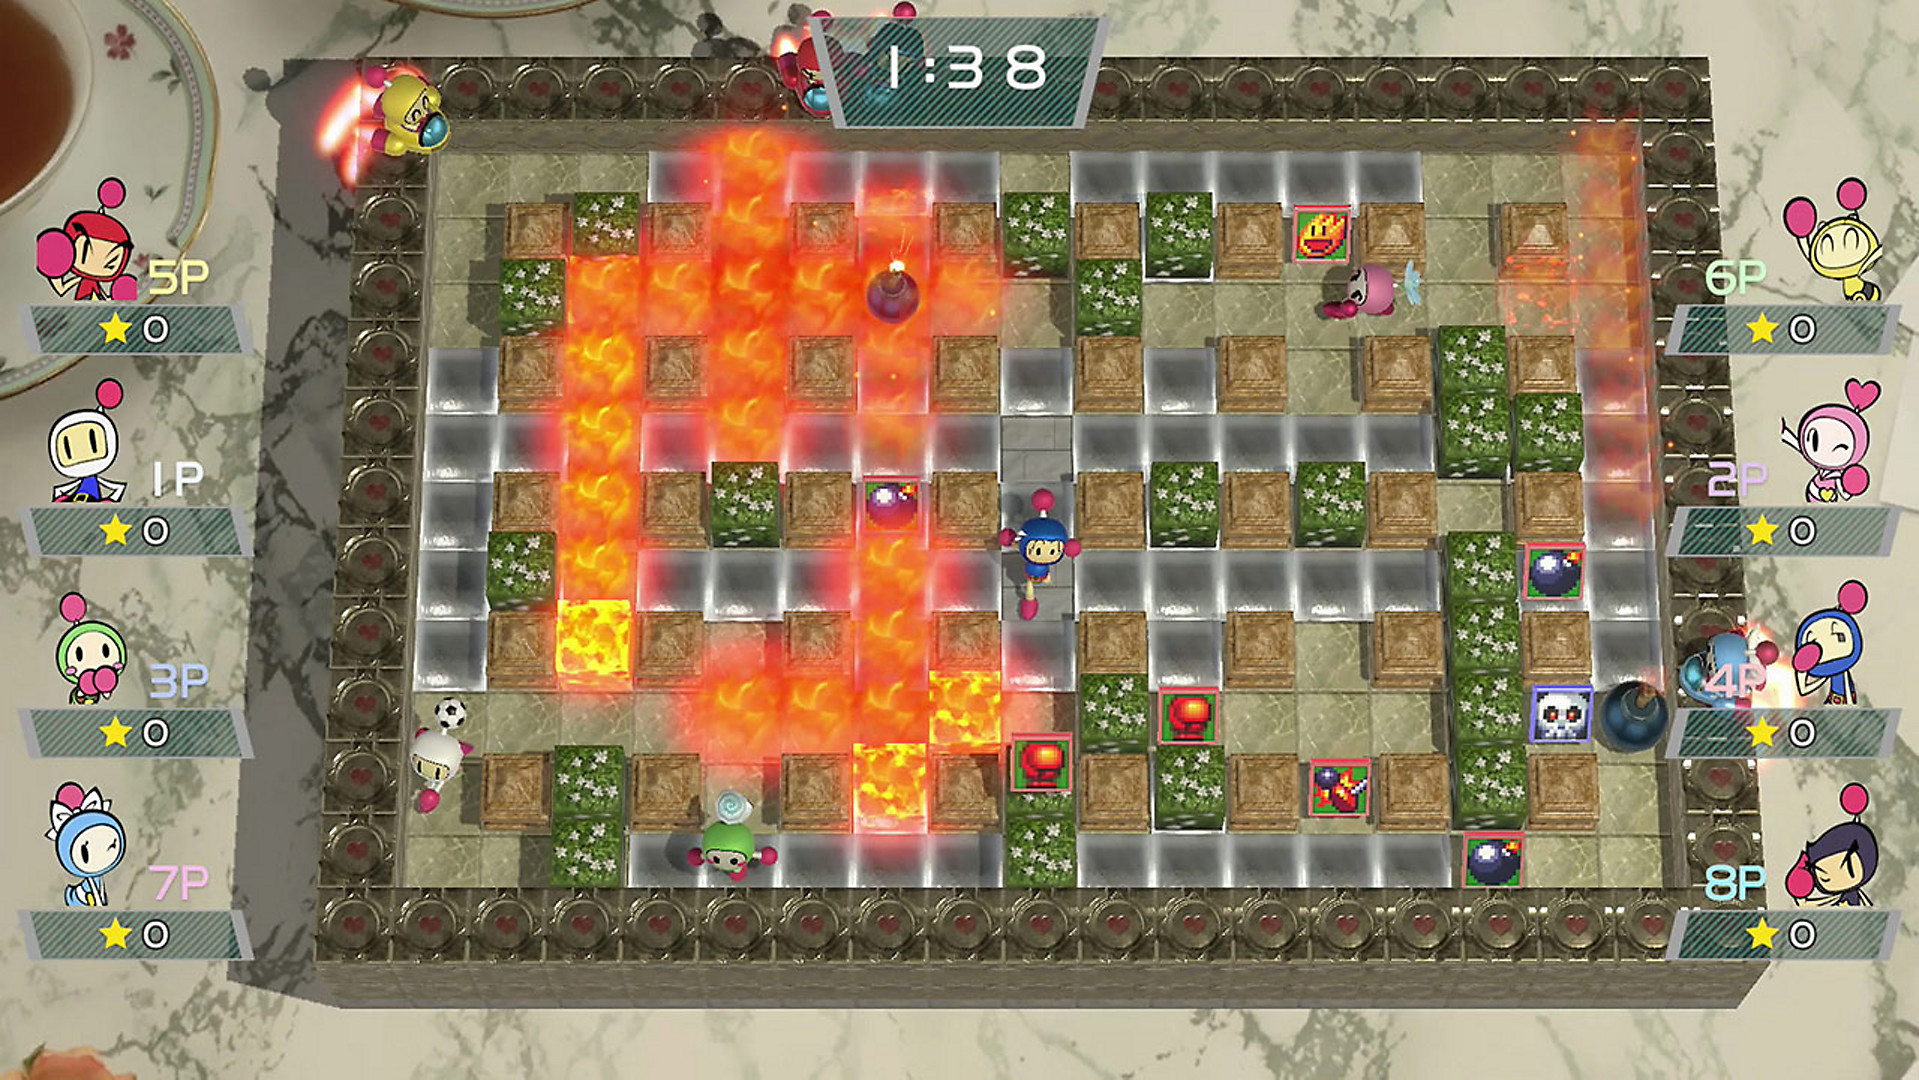 super-bomberman-r-screenshot-01-ps4-us-1